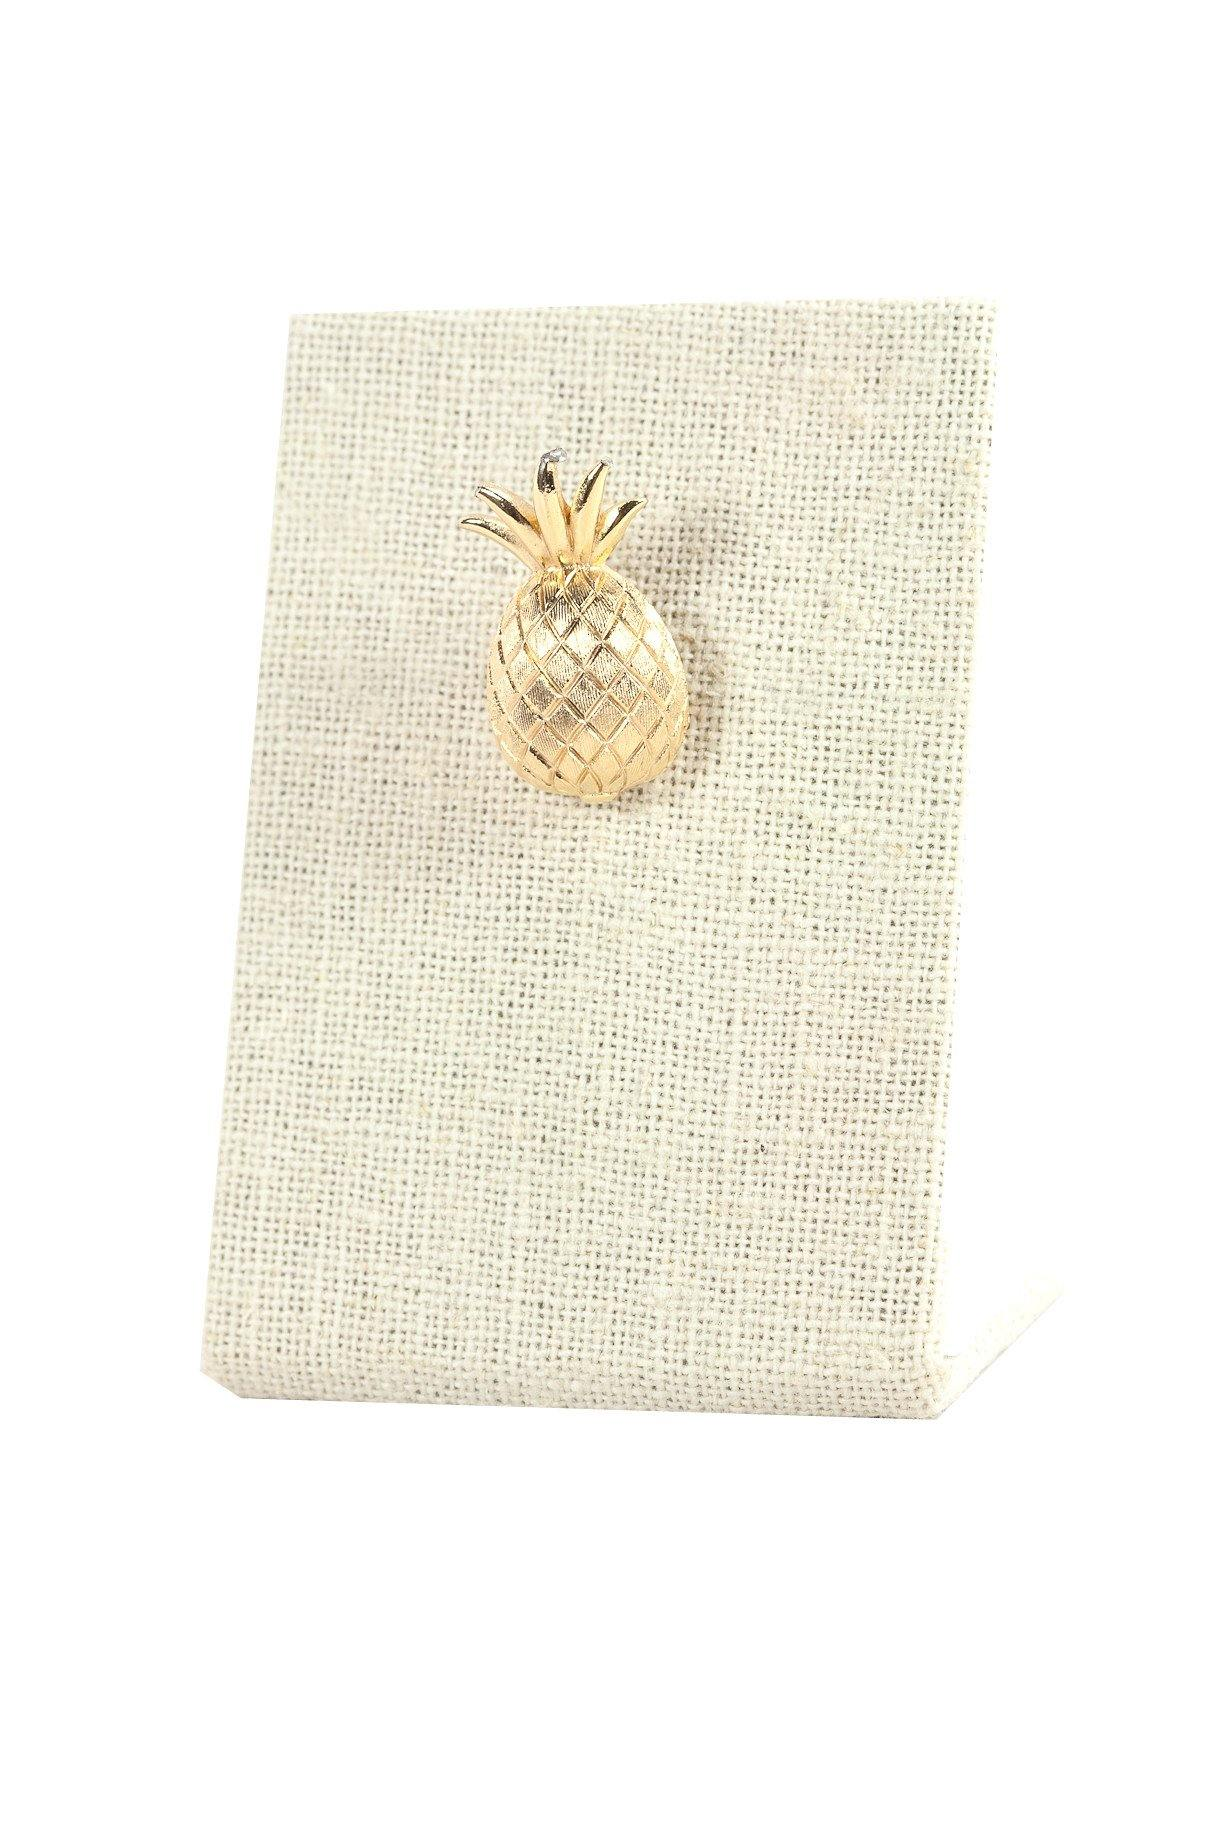 50's Trifari Pineapple Brooch